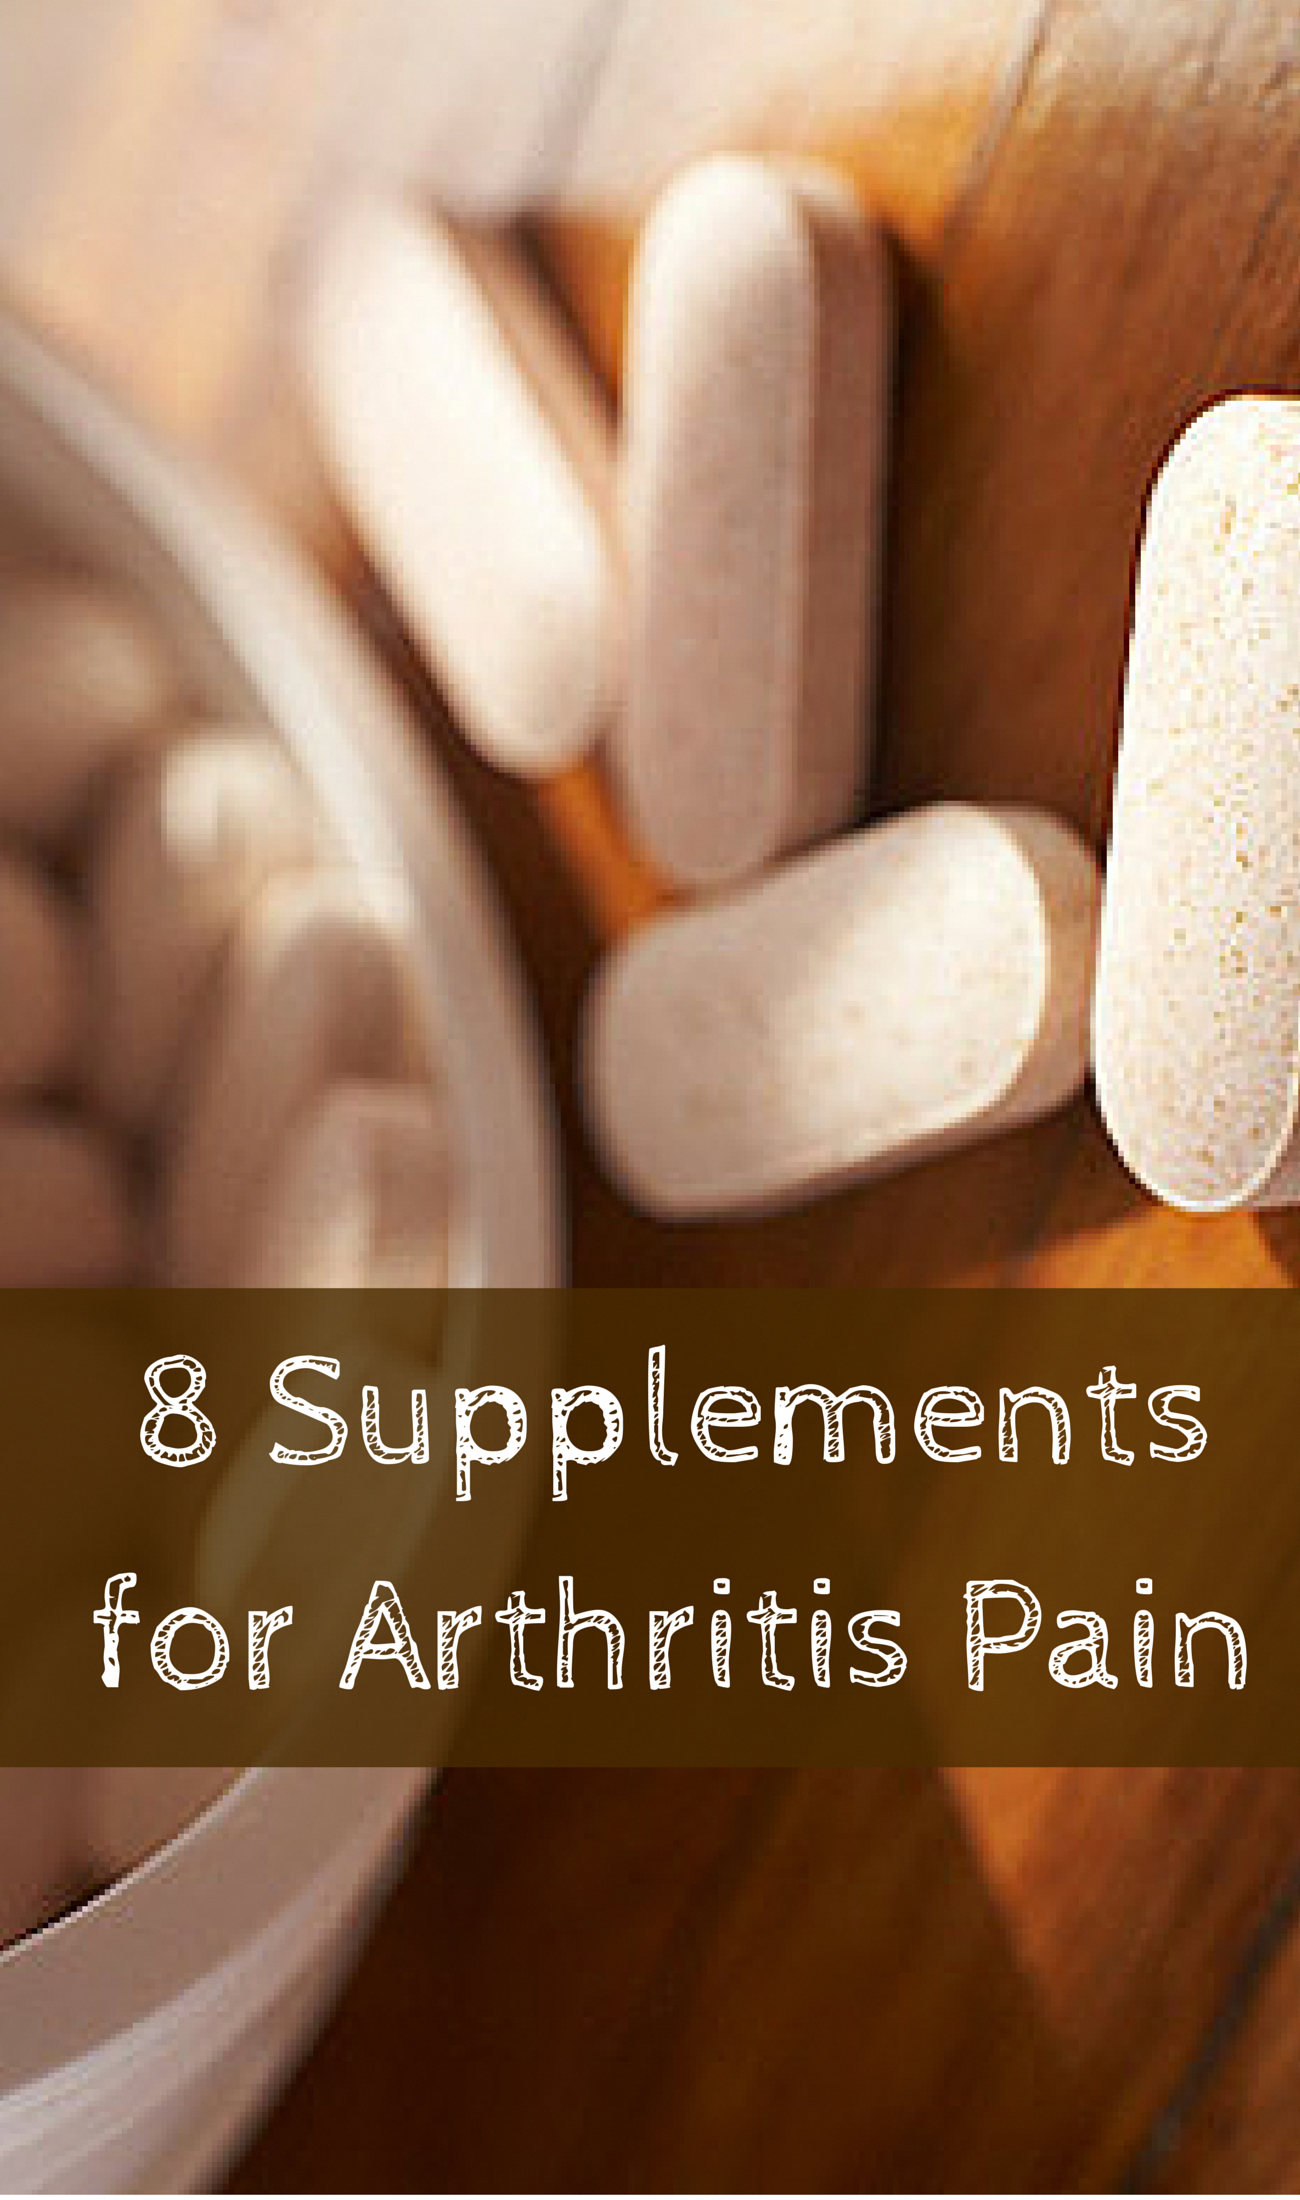 8 Supplements for Arthritis Pain